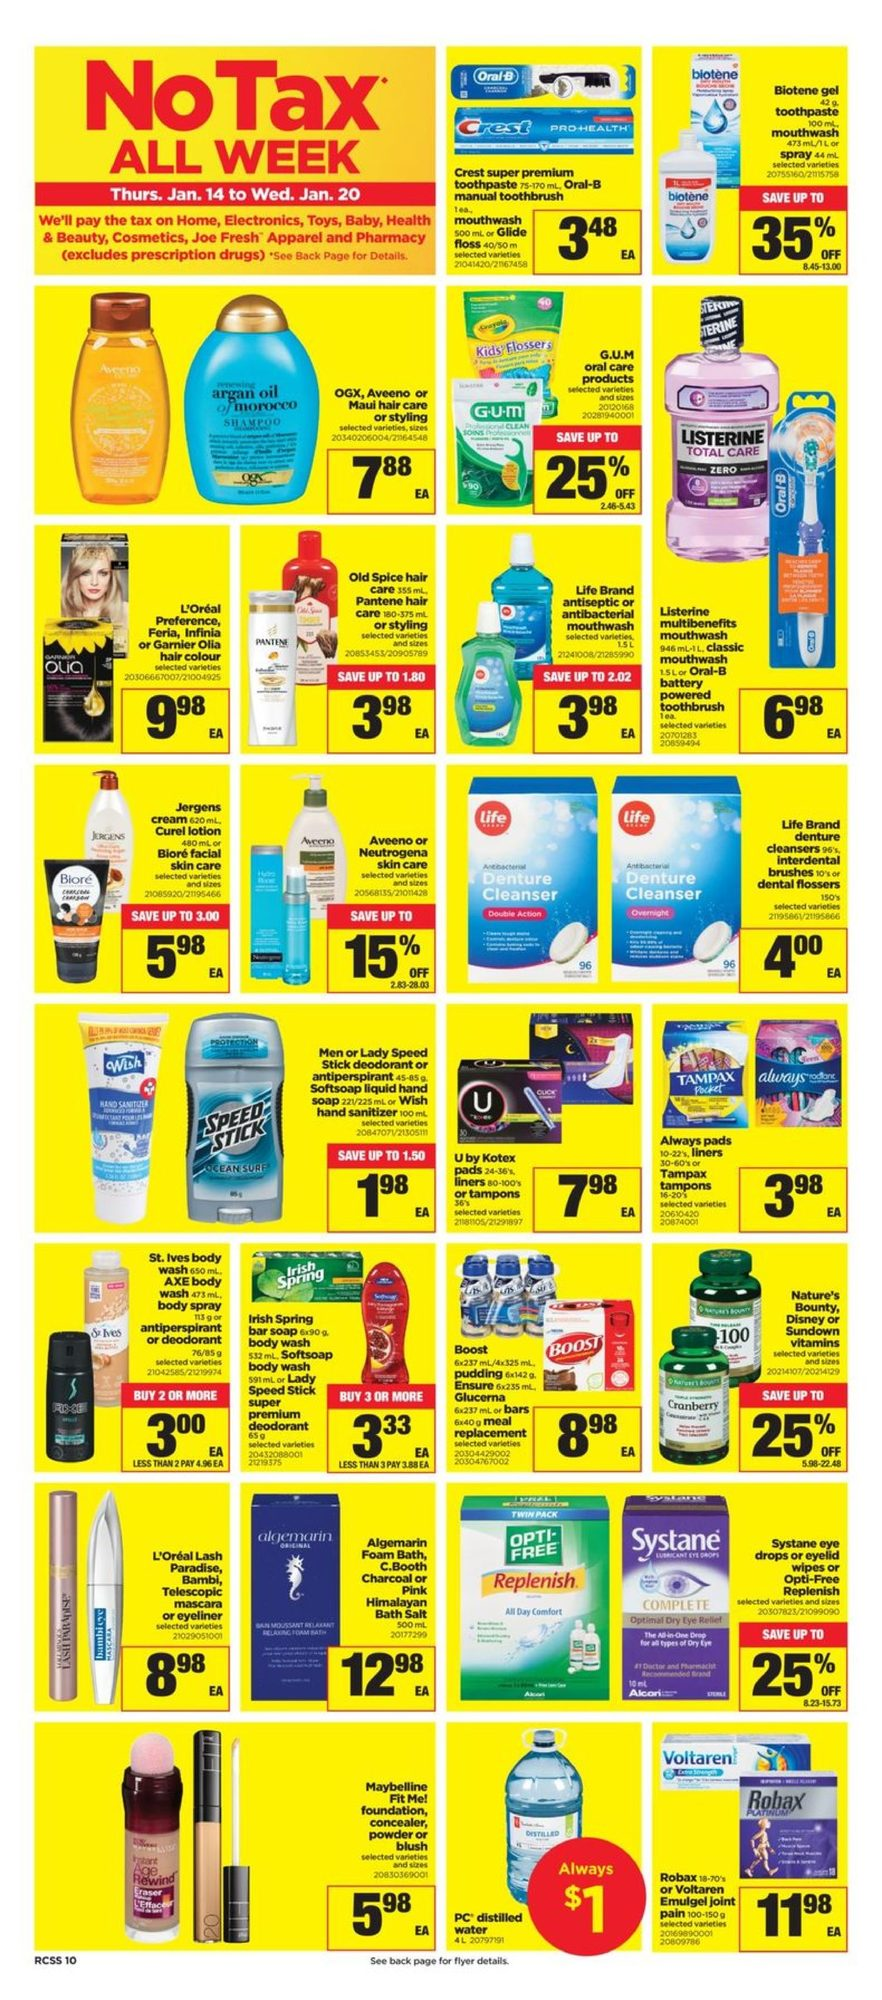 Real Canadian Superstore - Weekly Flyer Specials - Page 10